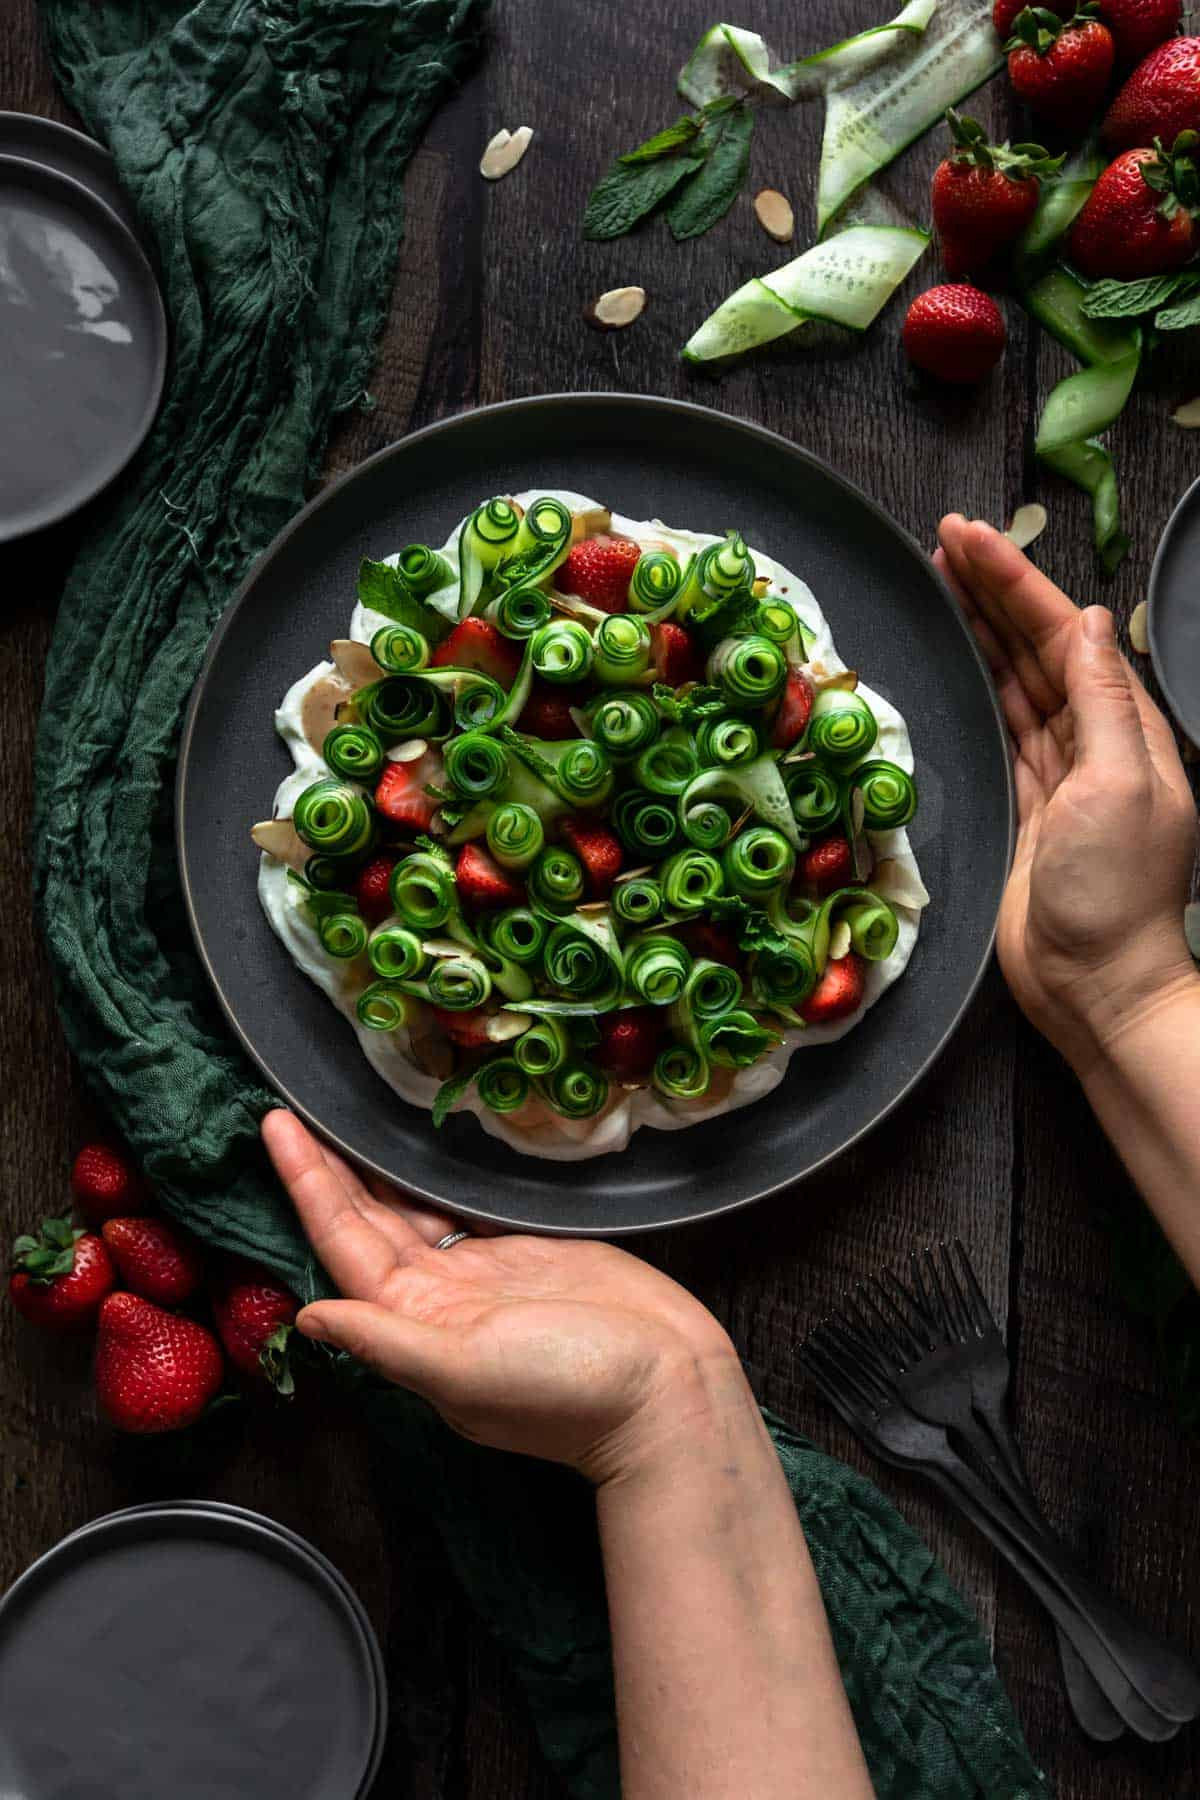 Two hands placing down a plate of curled cucumber ribbon salad with fresh strawberries and toasted almonds on a bed of whipped goat cheese. A green linen, forks, plates, and additional strawberries and slices of cucumber surround the plate.